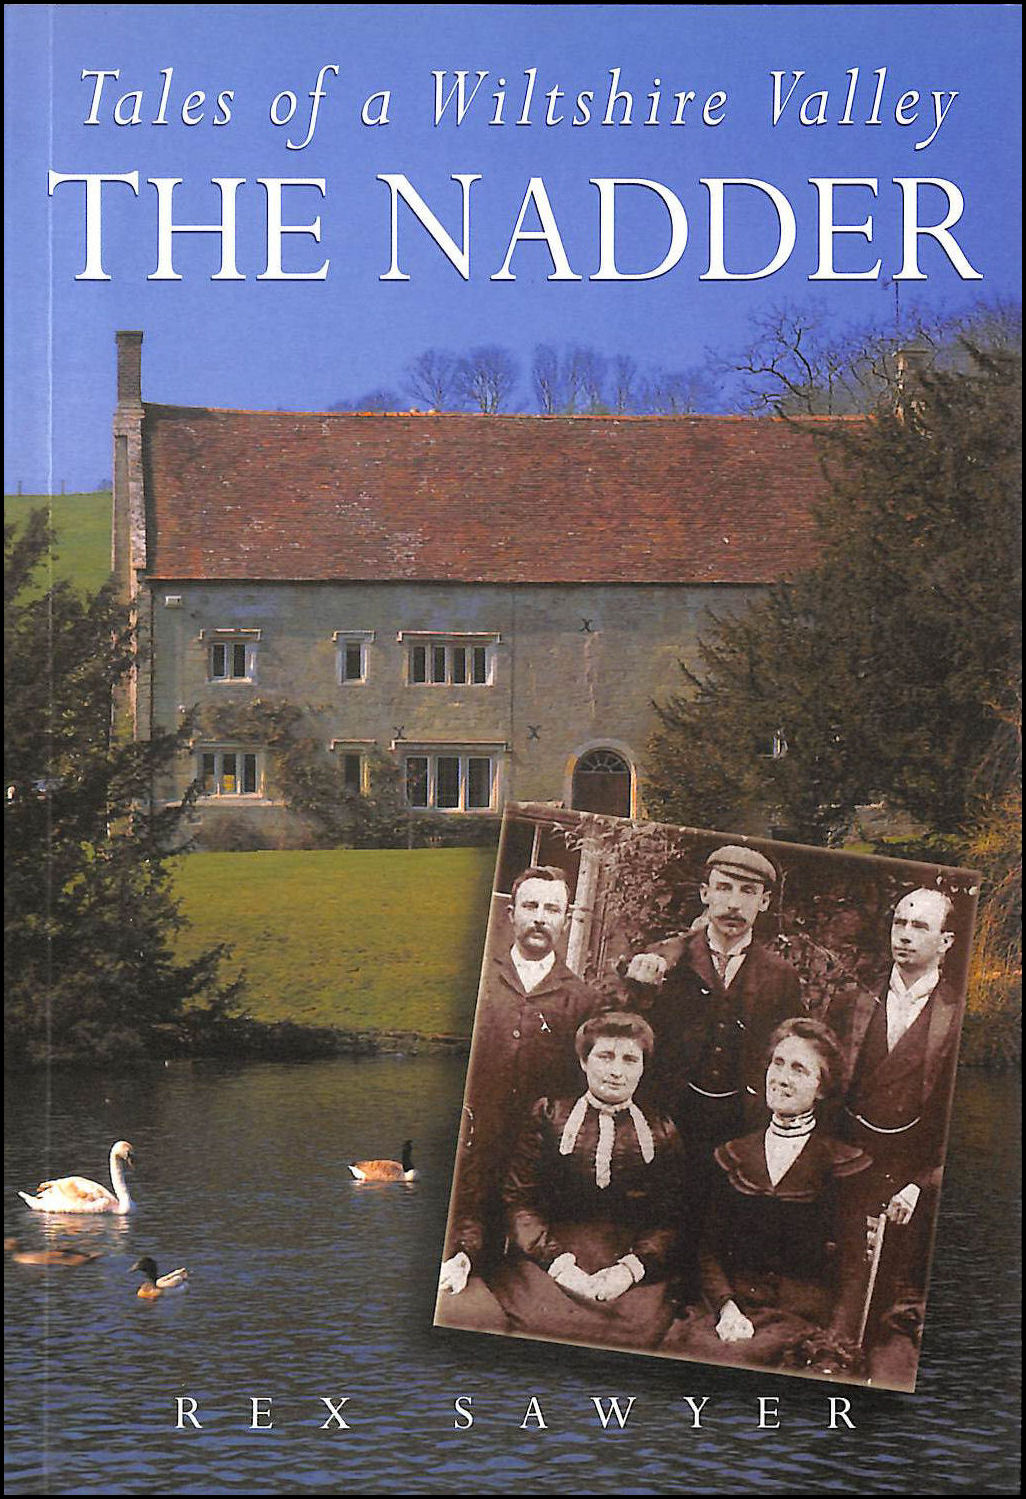 Tales of a Wiltshire Valley: The Nadder, Sawyer, Rex